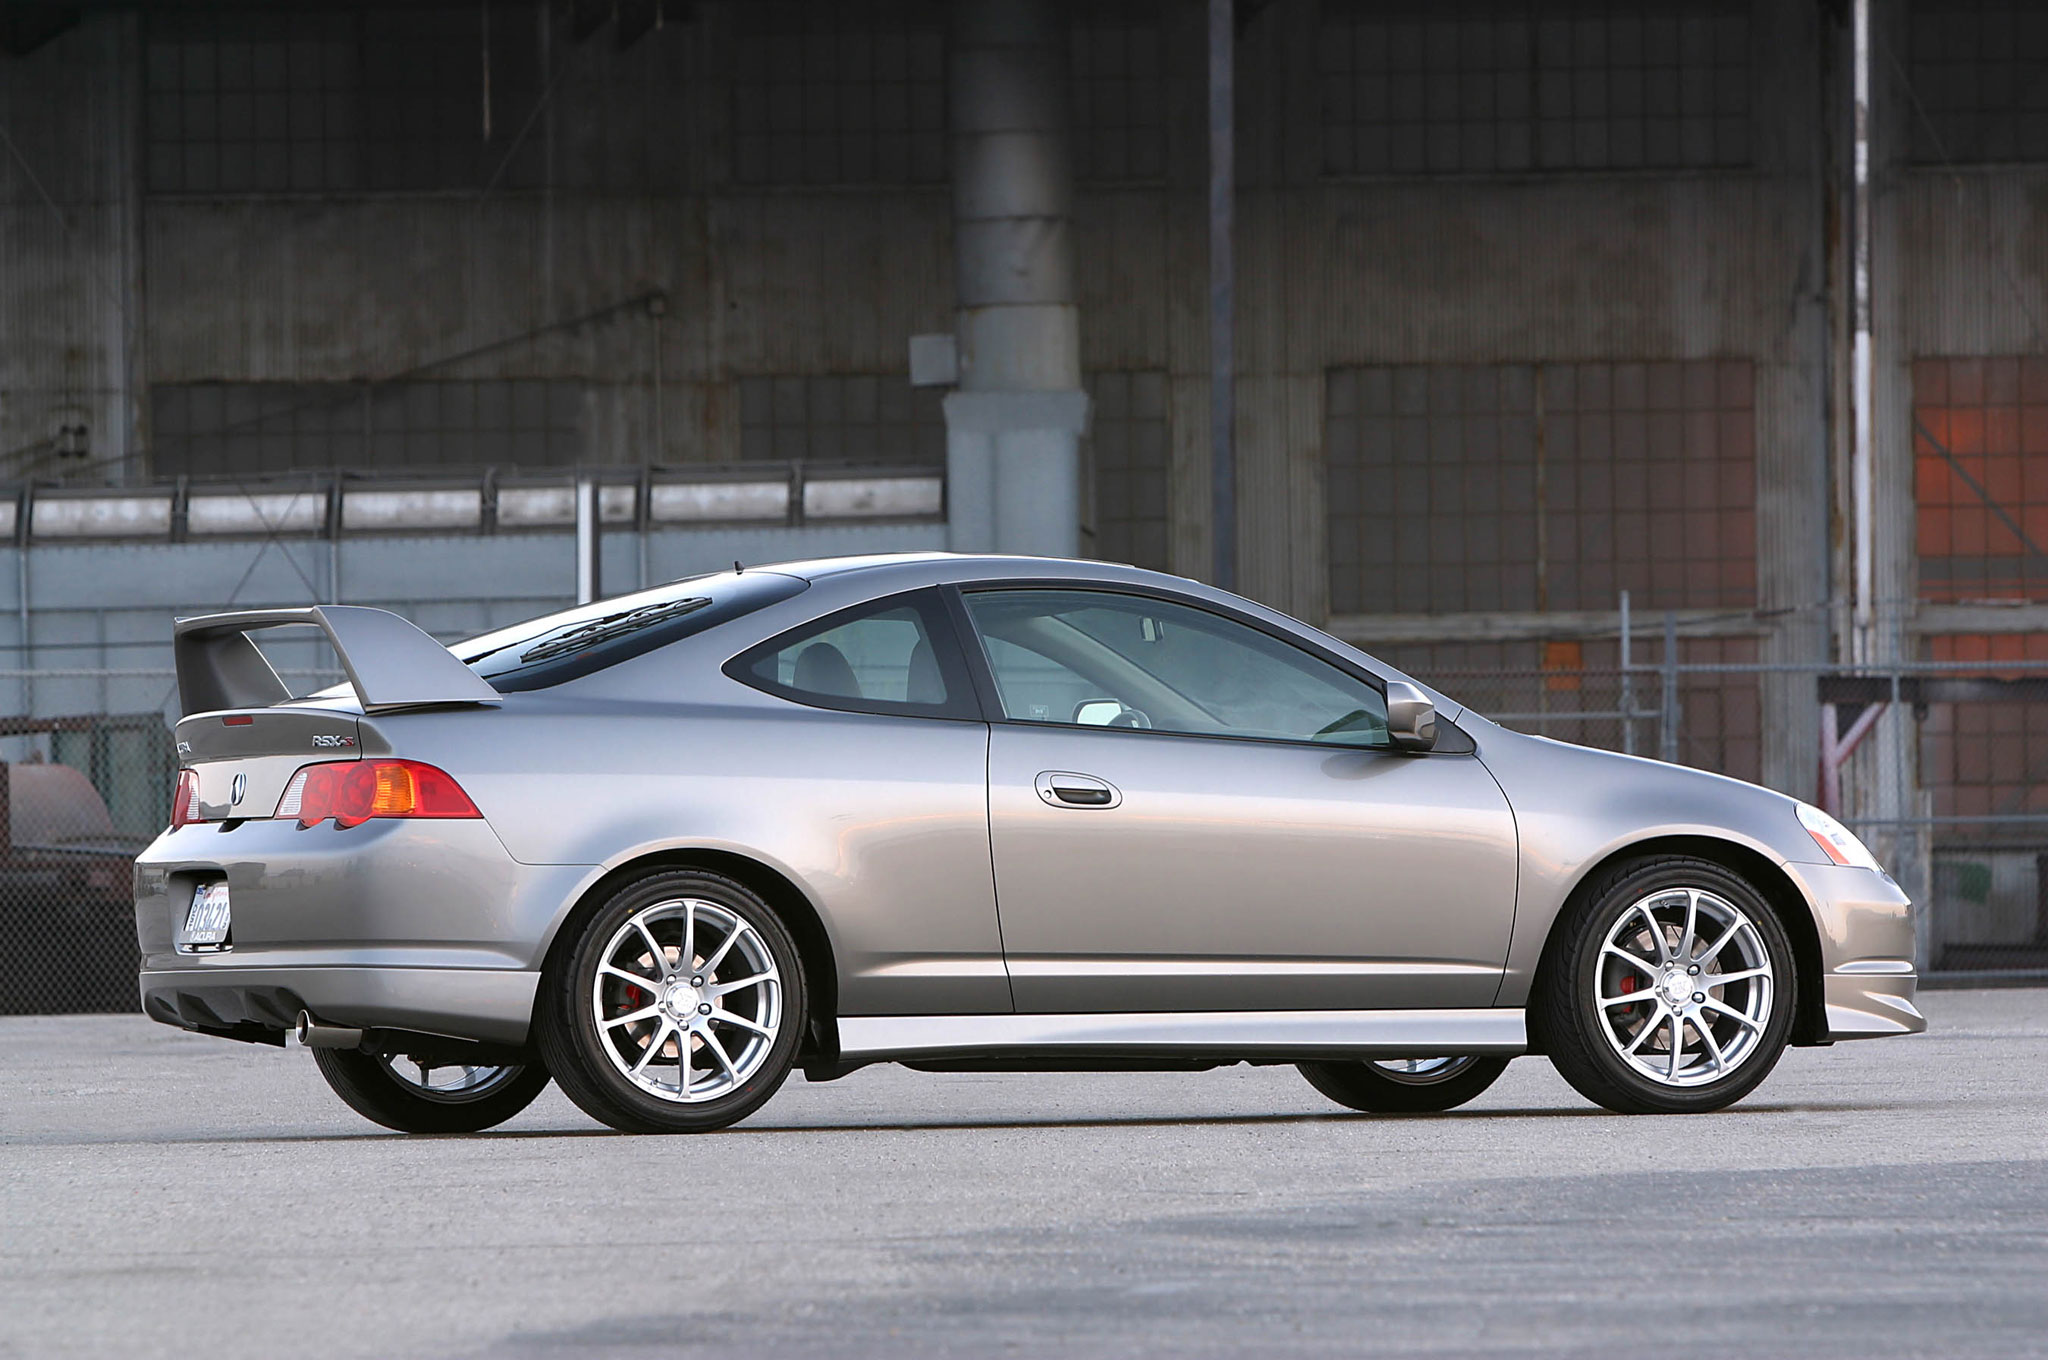 2002 Acura RSX Type-S - Four Seasons Wrap-Up